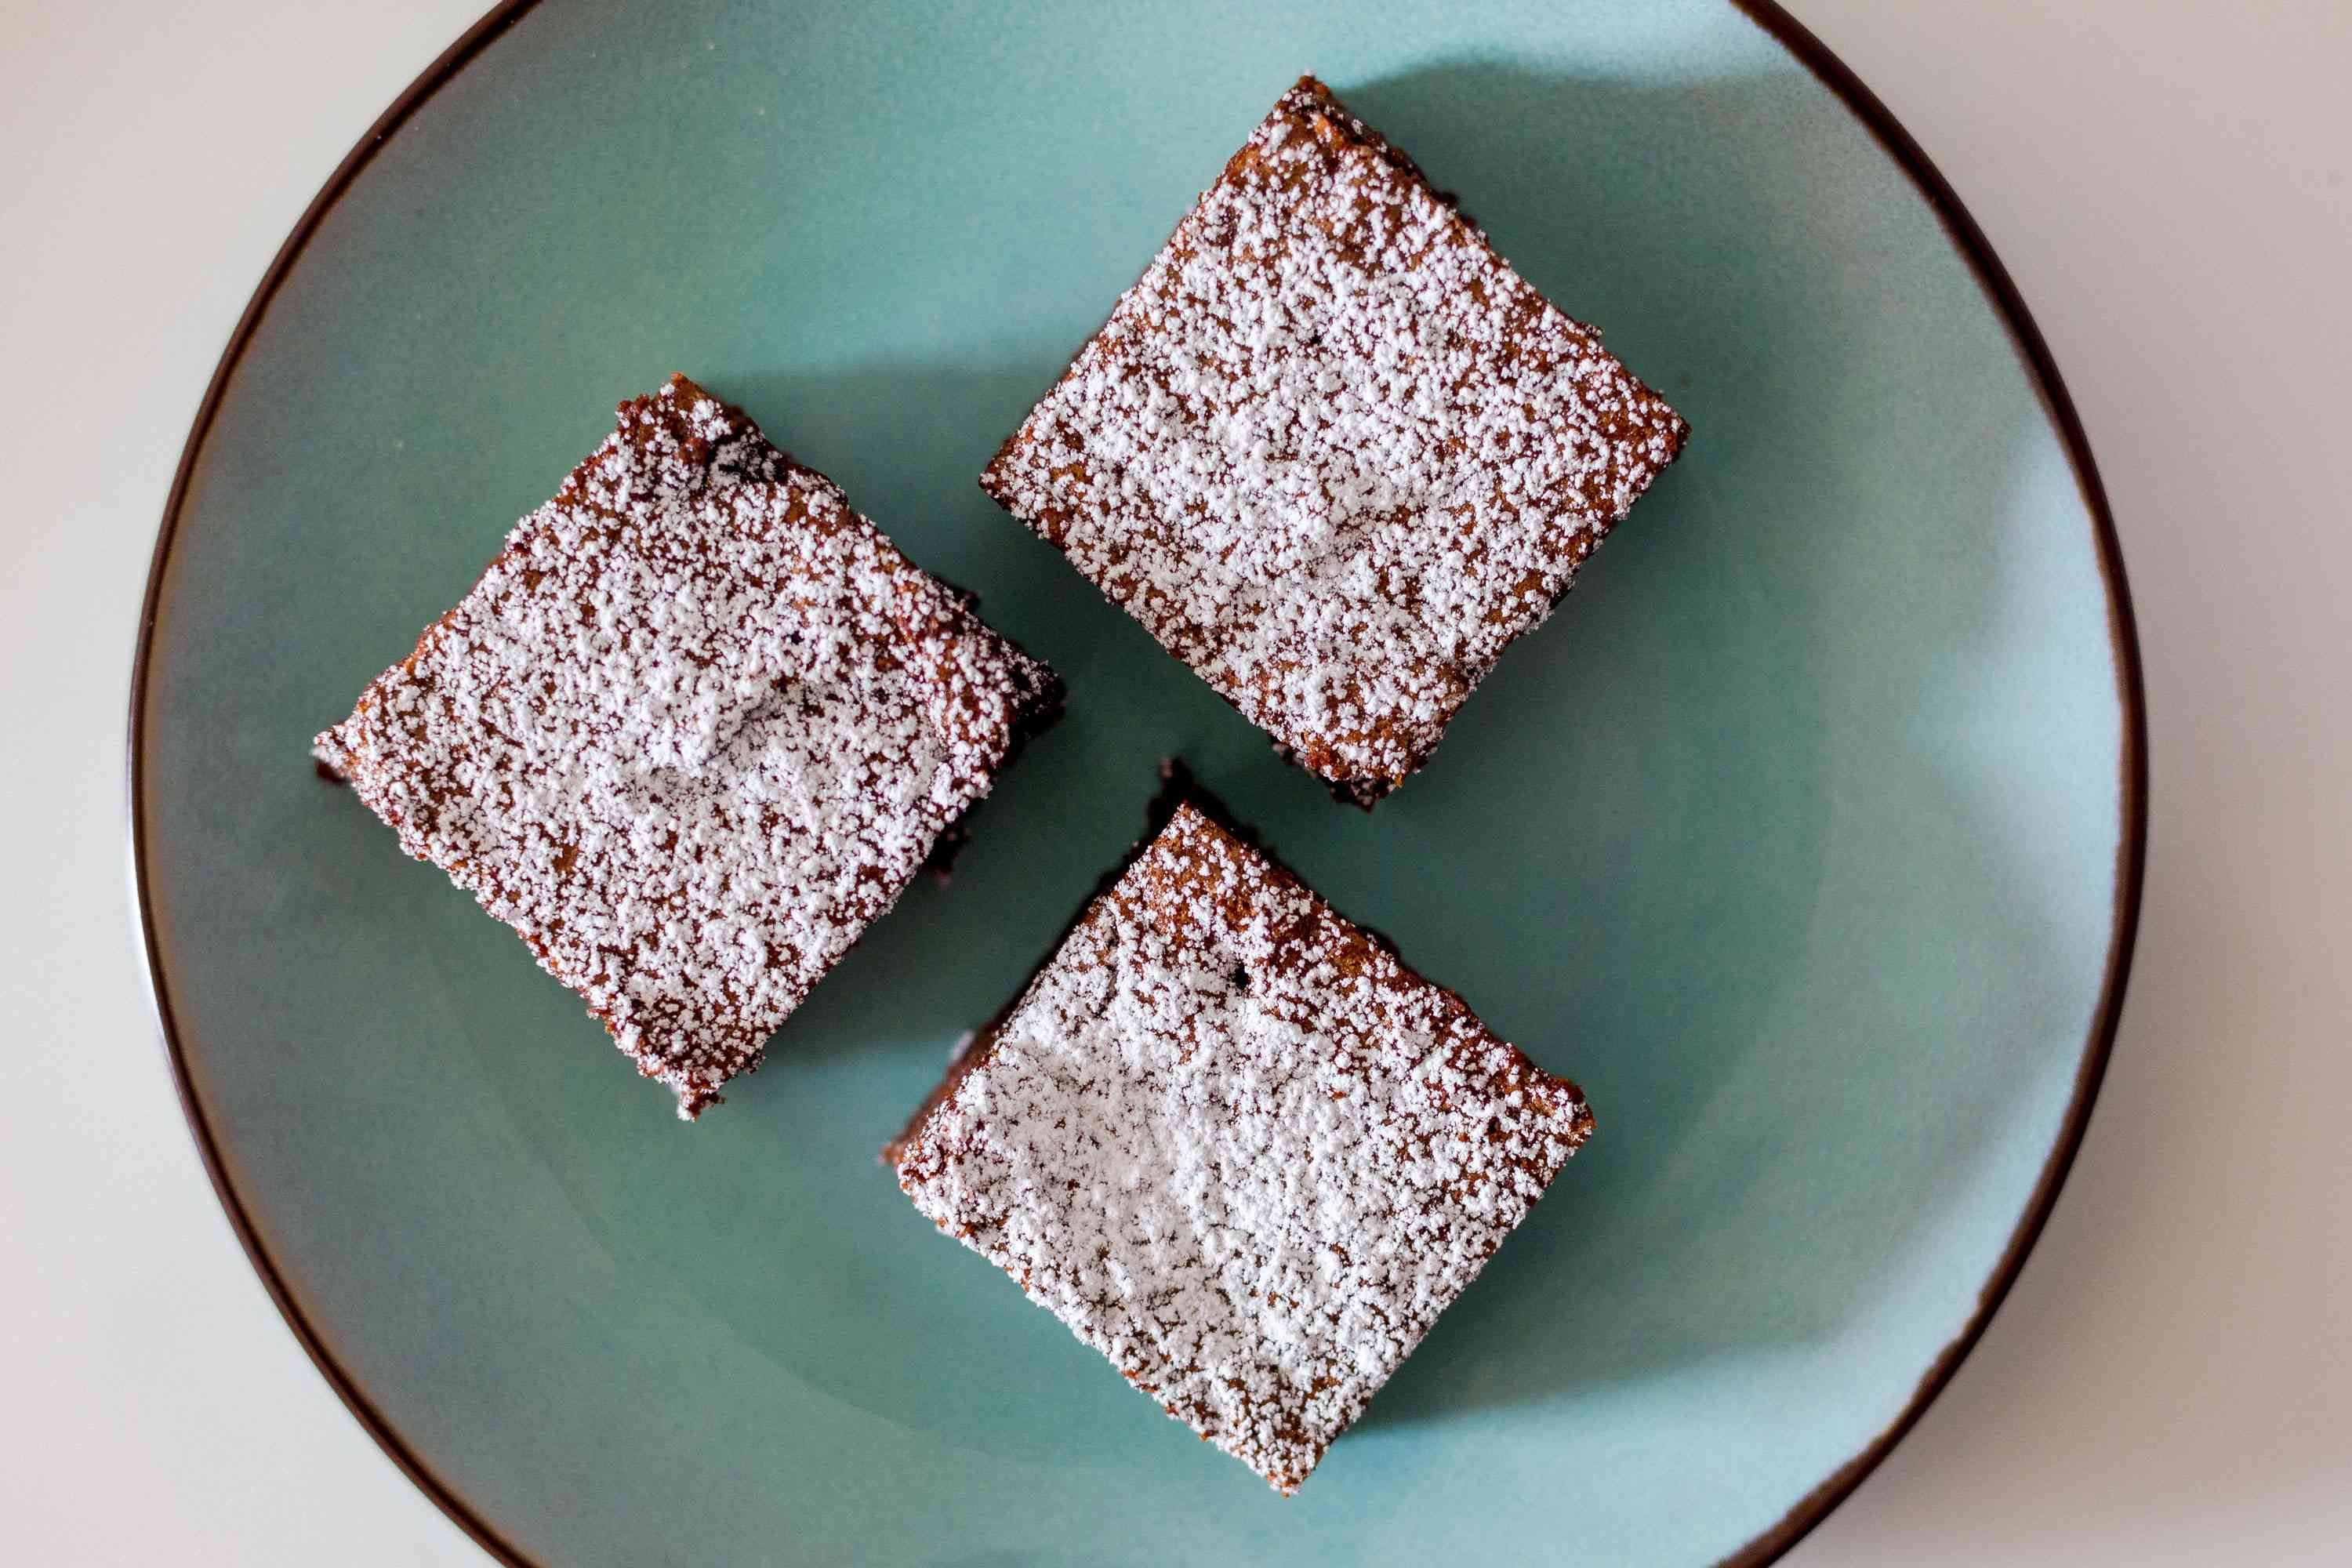 Slices of vegan Mexican chocolate cake topped with powdered sugar